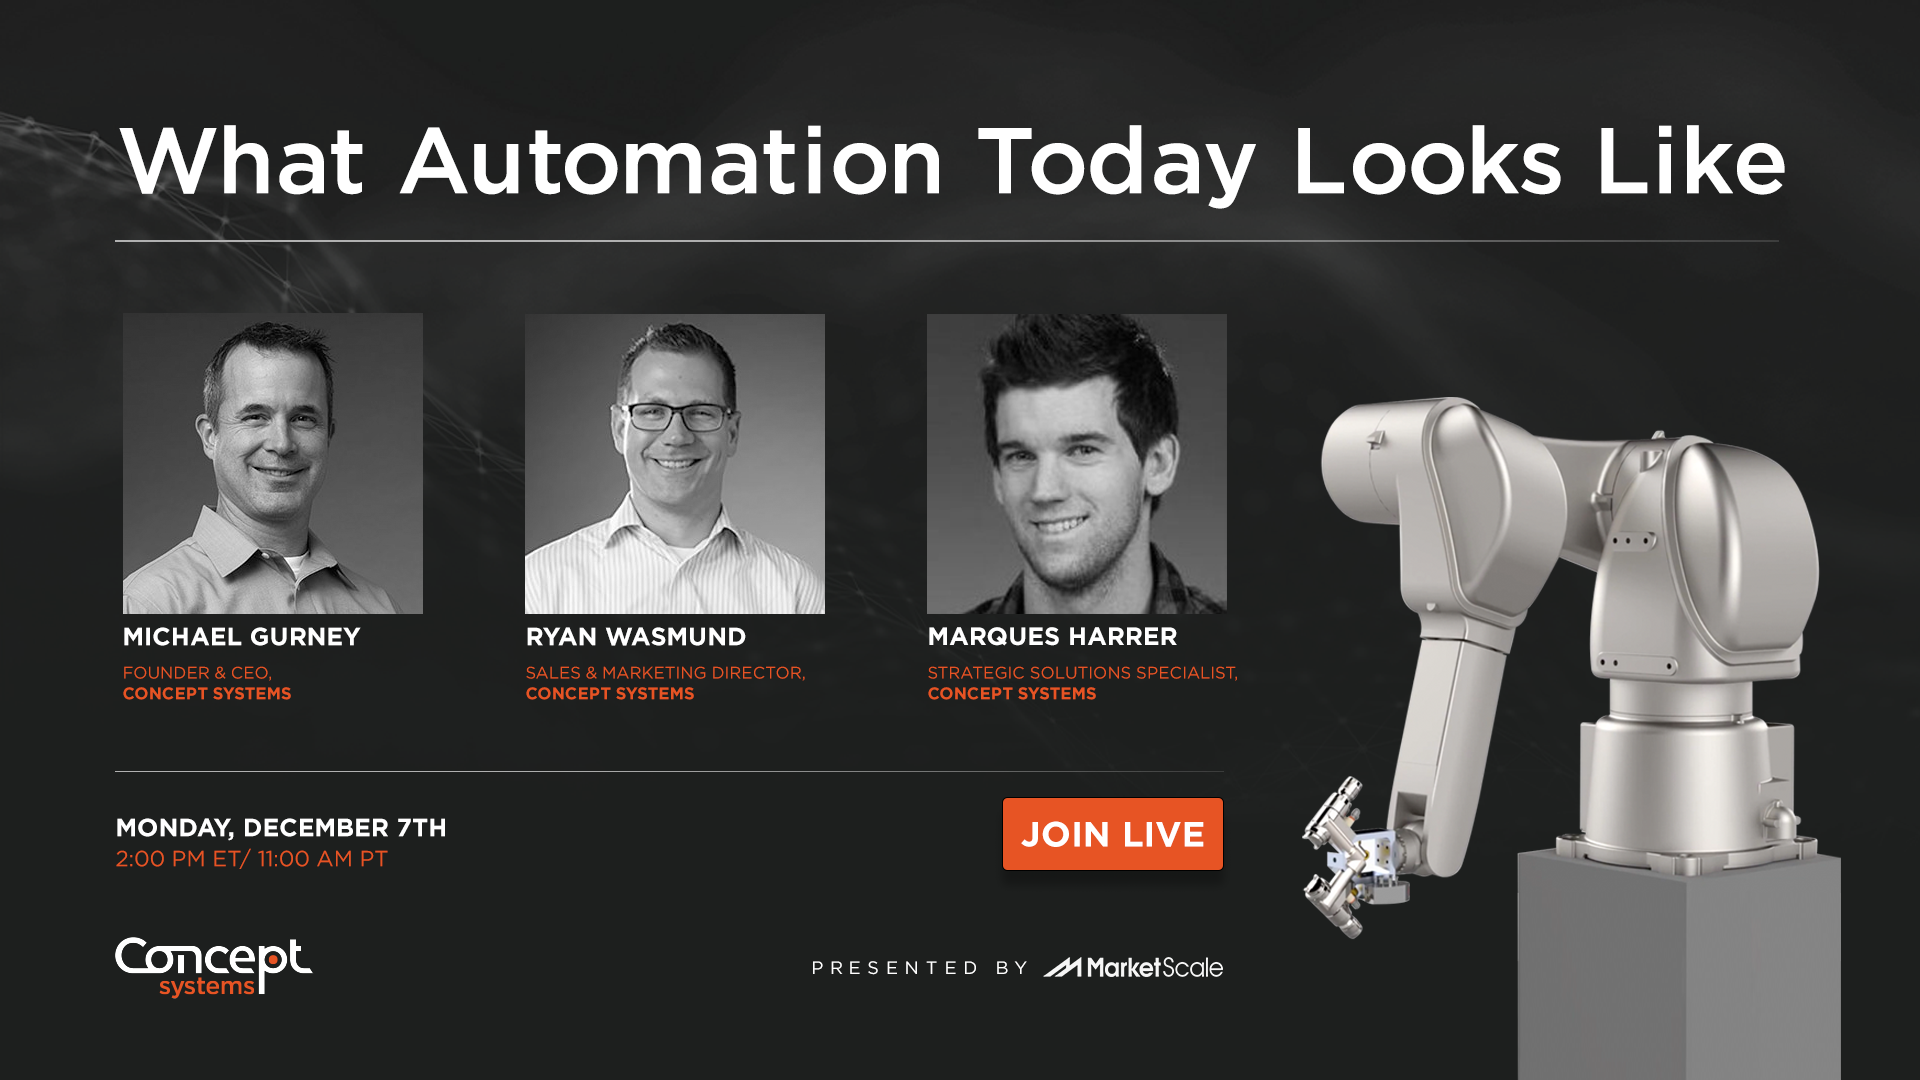 What Automation Today Looks Like